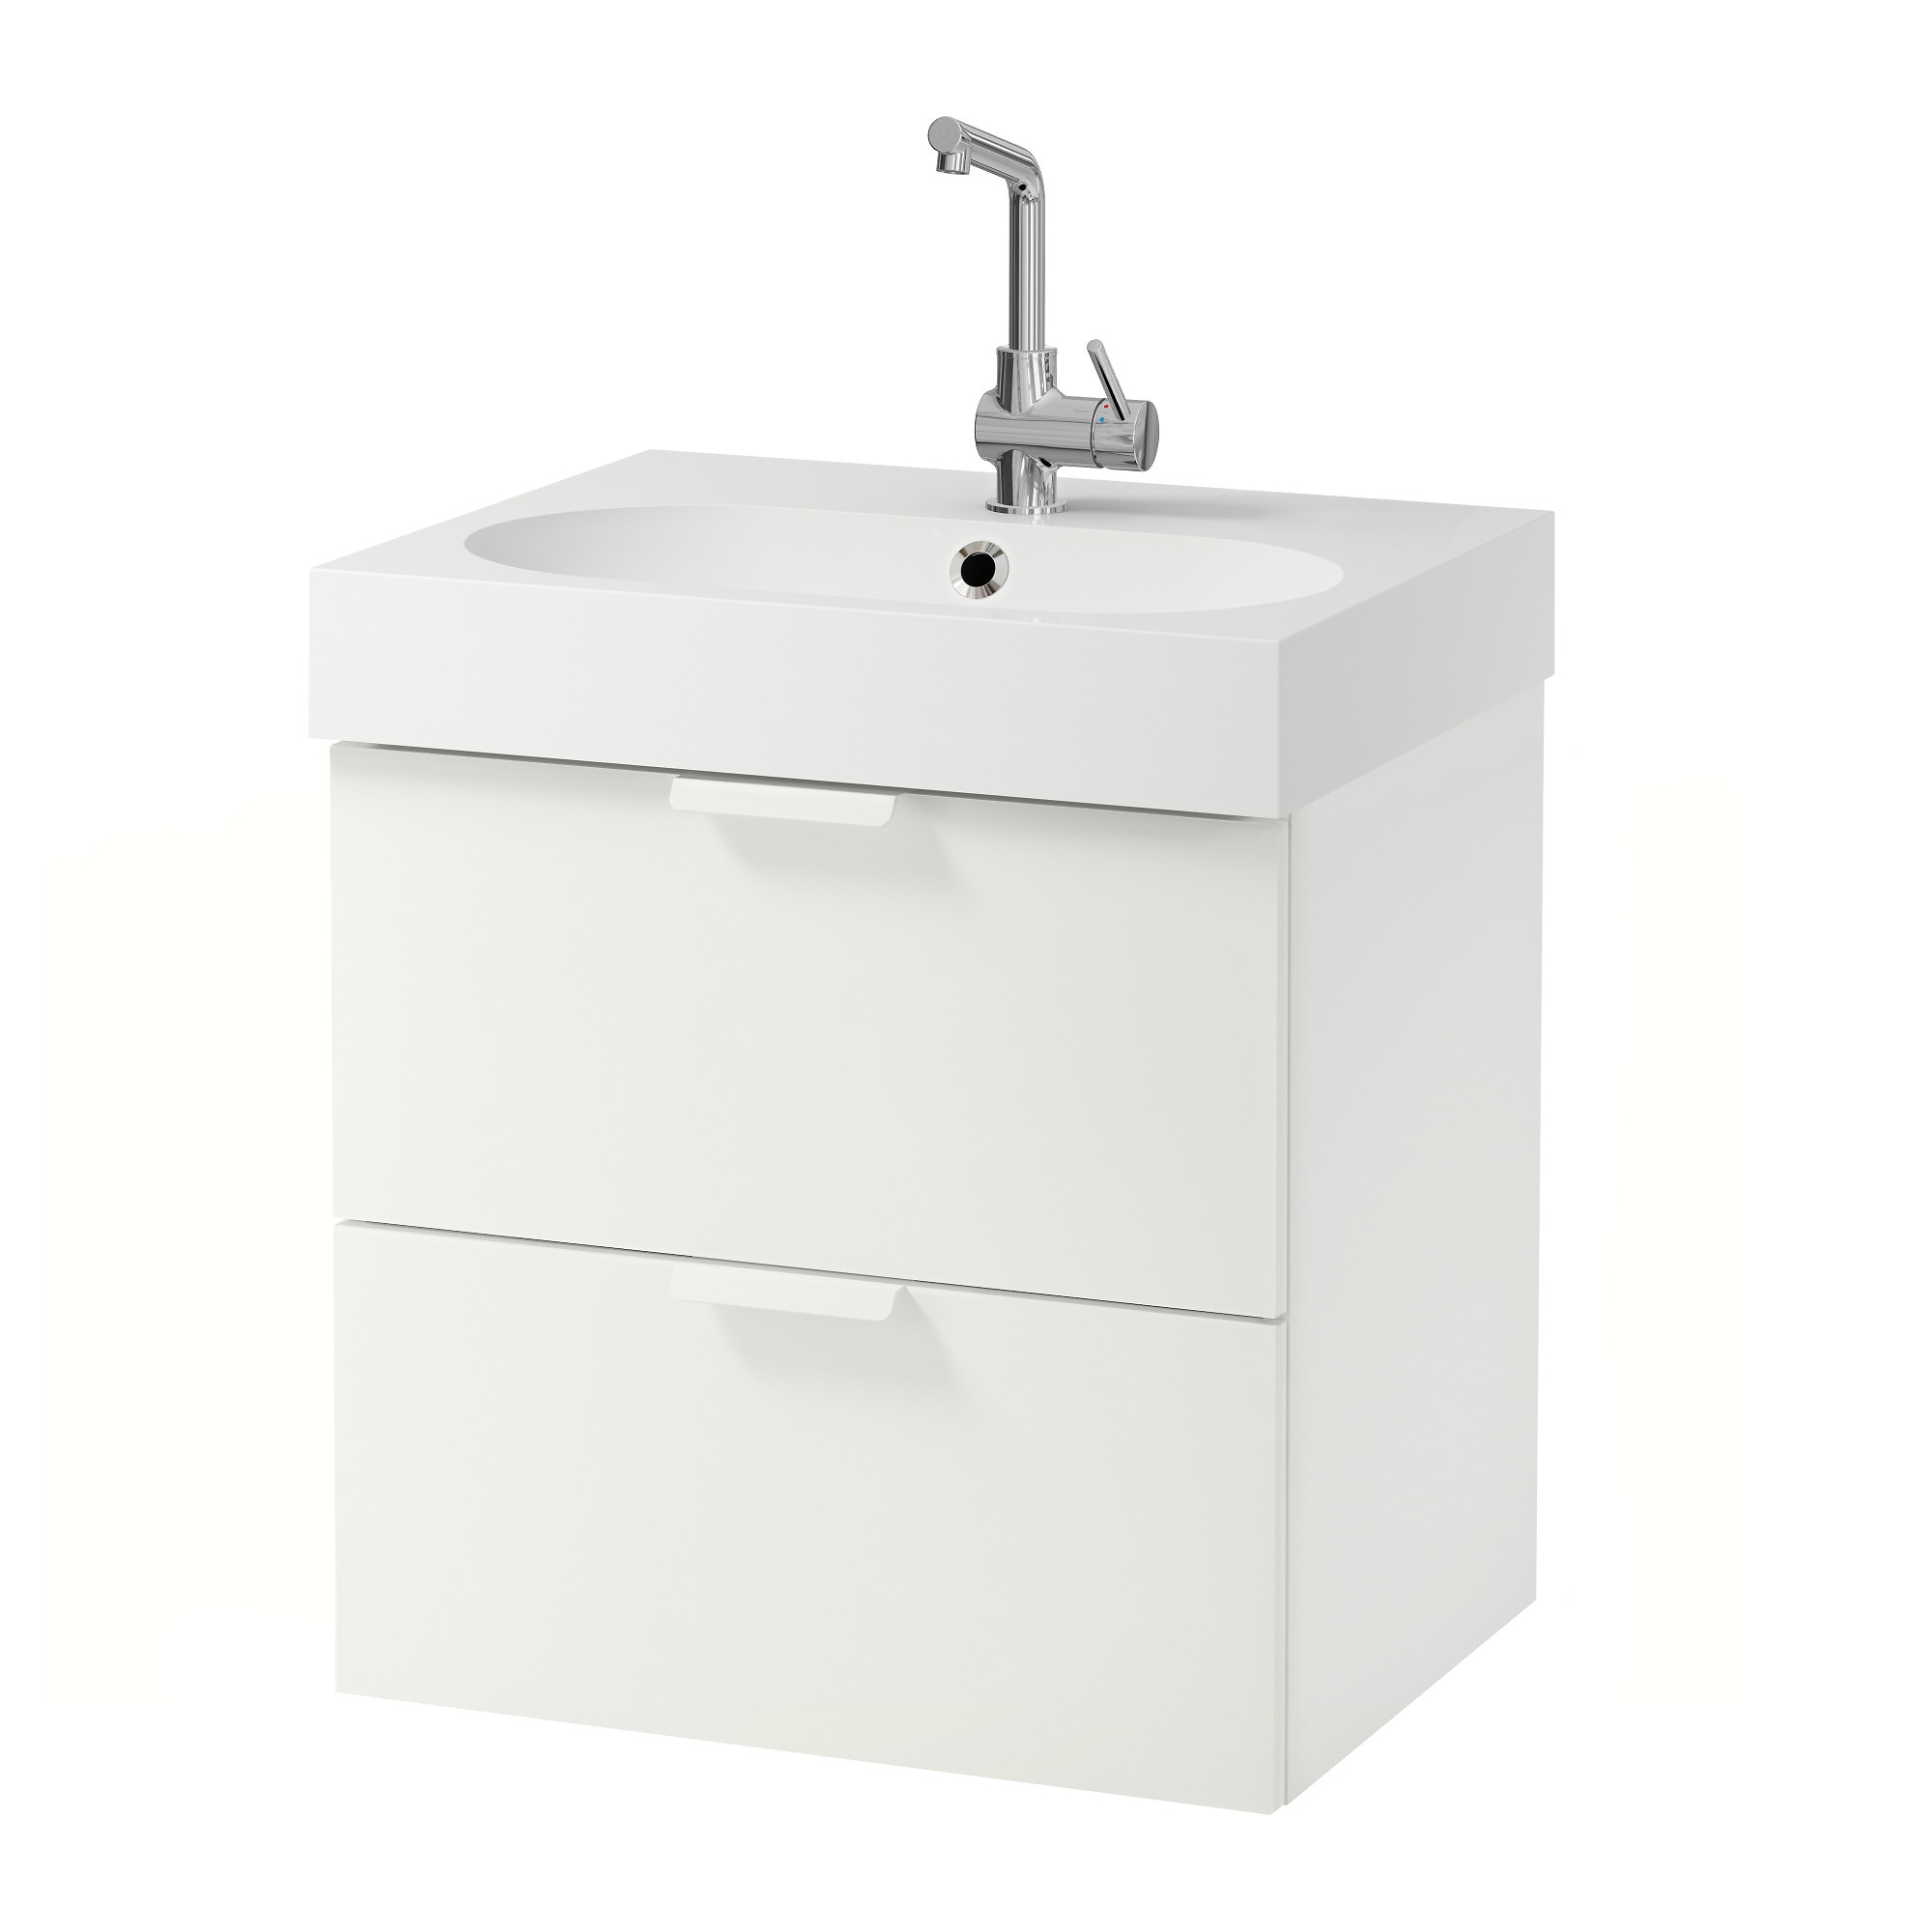 Bathroom sink dimensions mm - Godmorgon Br Viken Sink Cabinet With 2 Drawers White Width 24 3 8